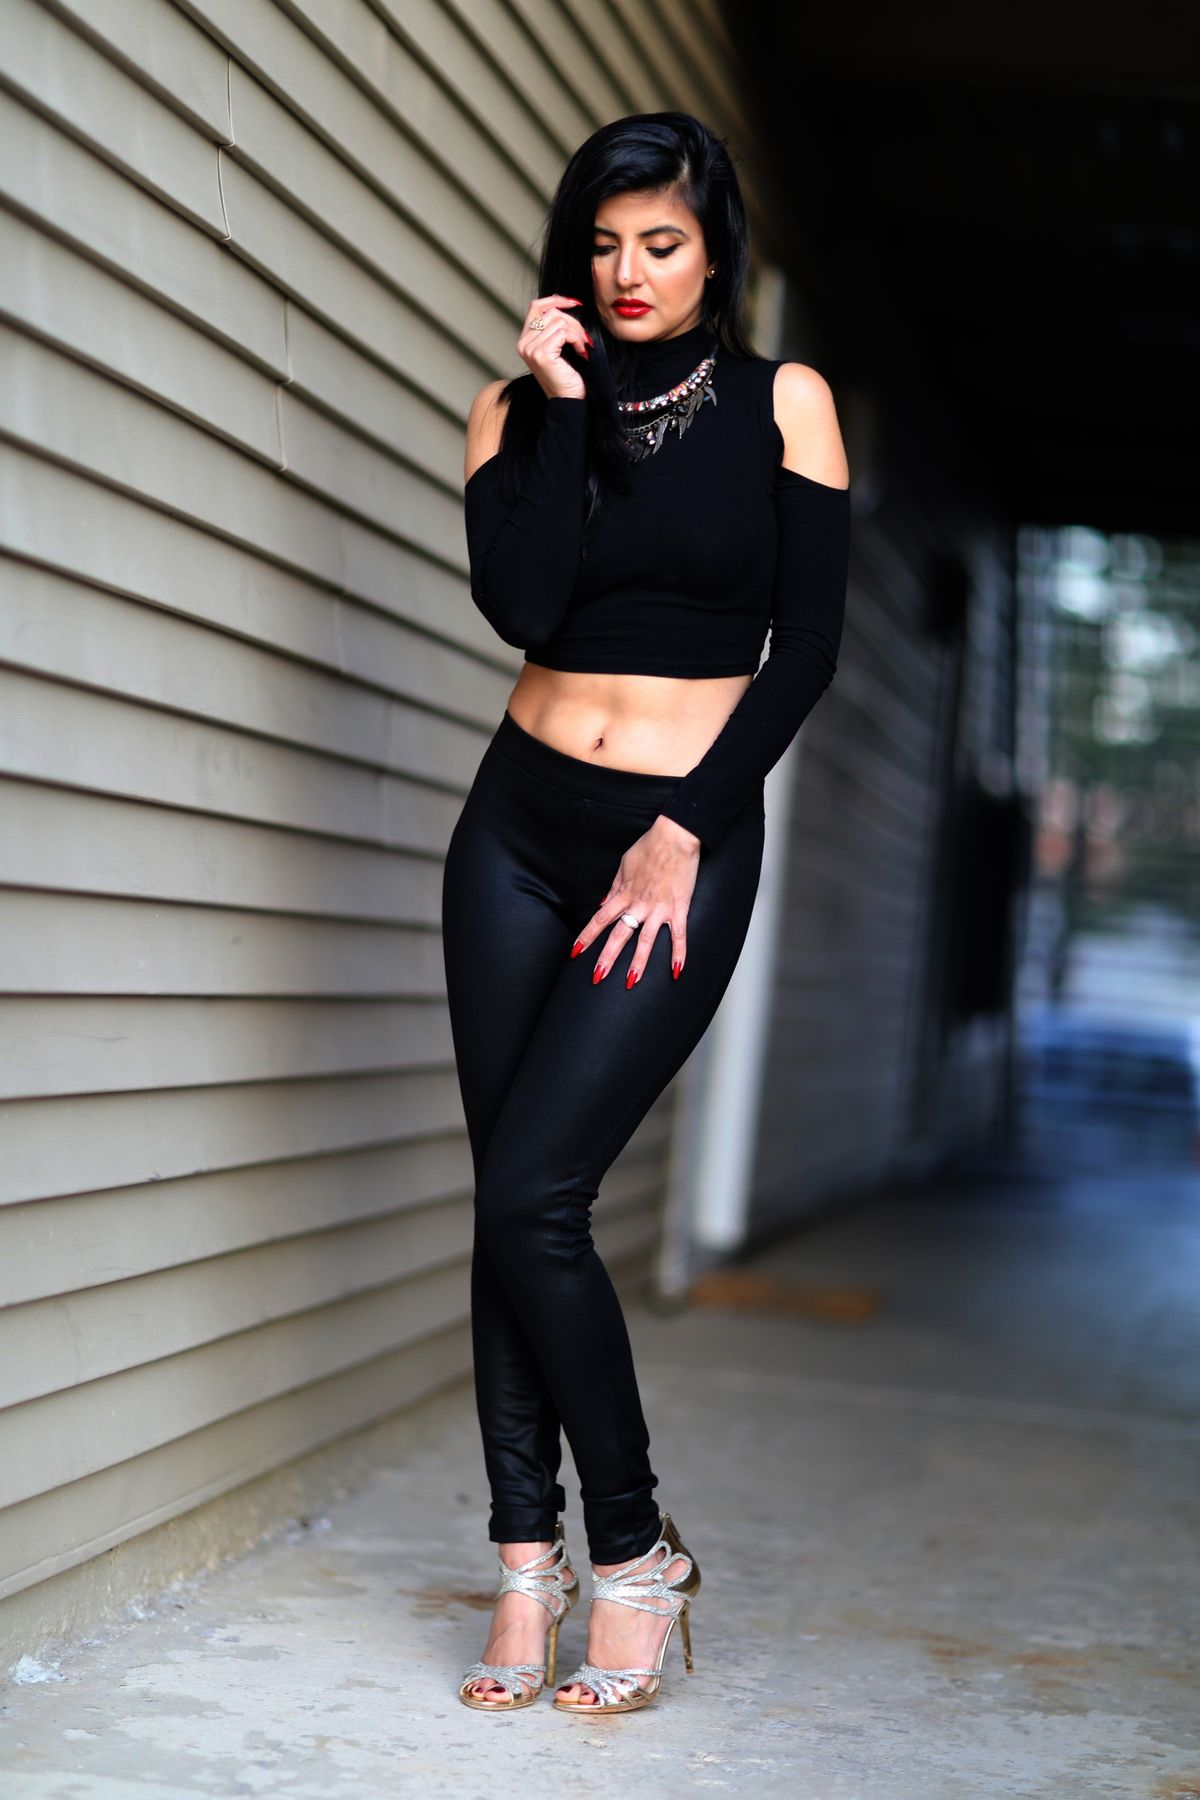 454e2baaa1c6e Black faux Leather pants and black crop top | The 90'Spice-Girls ...